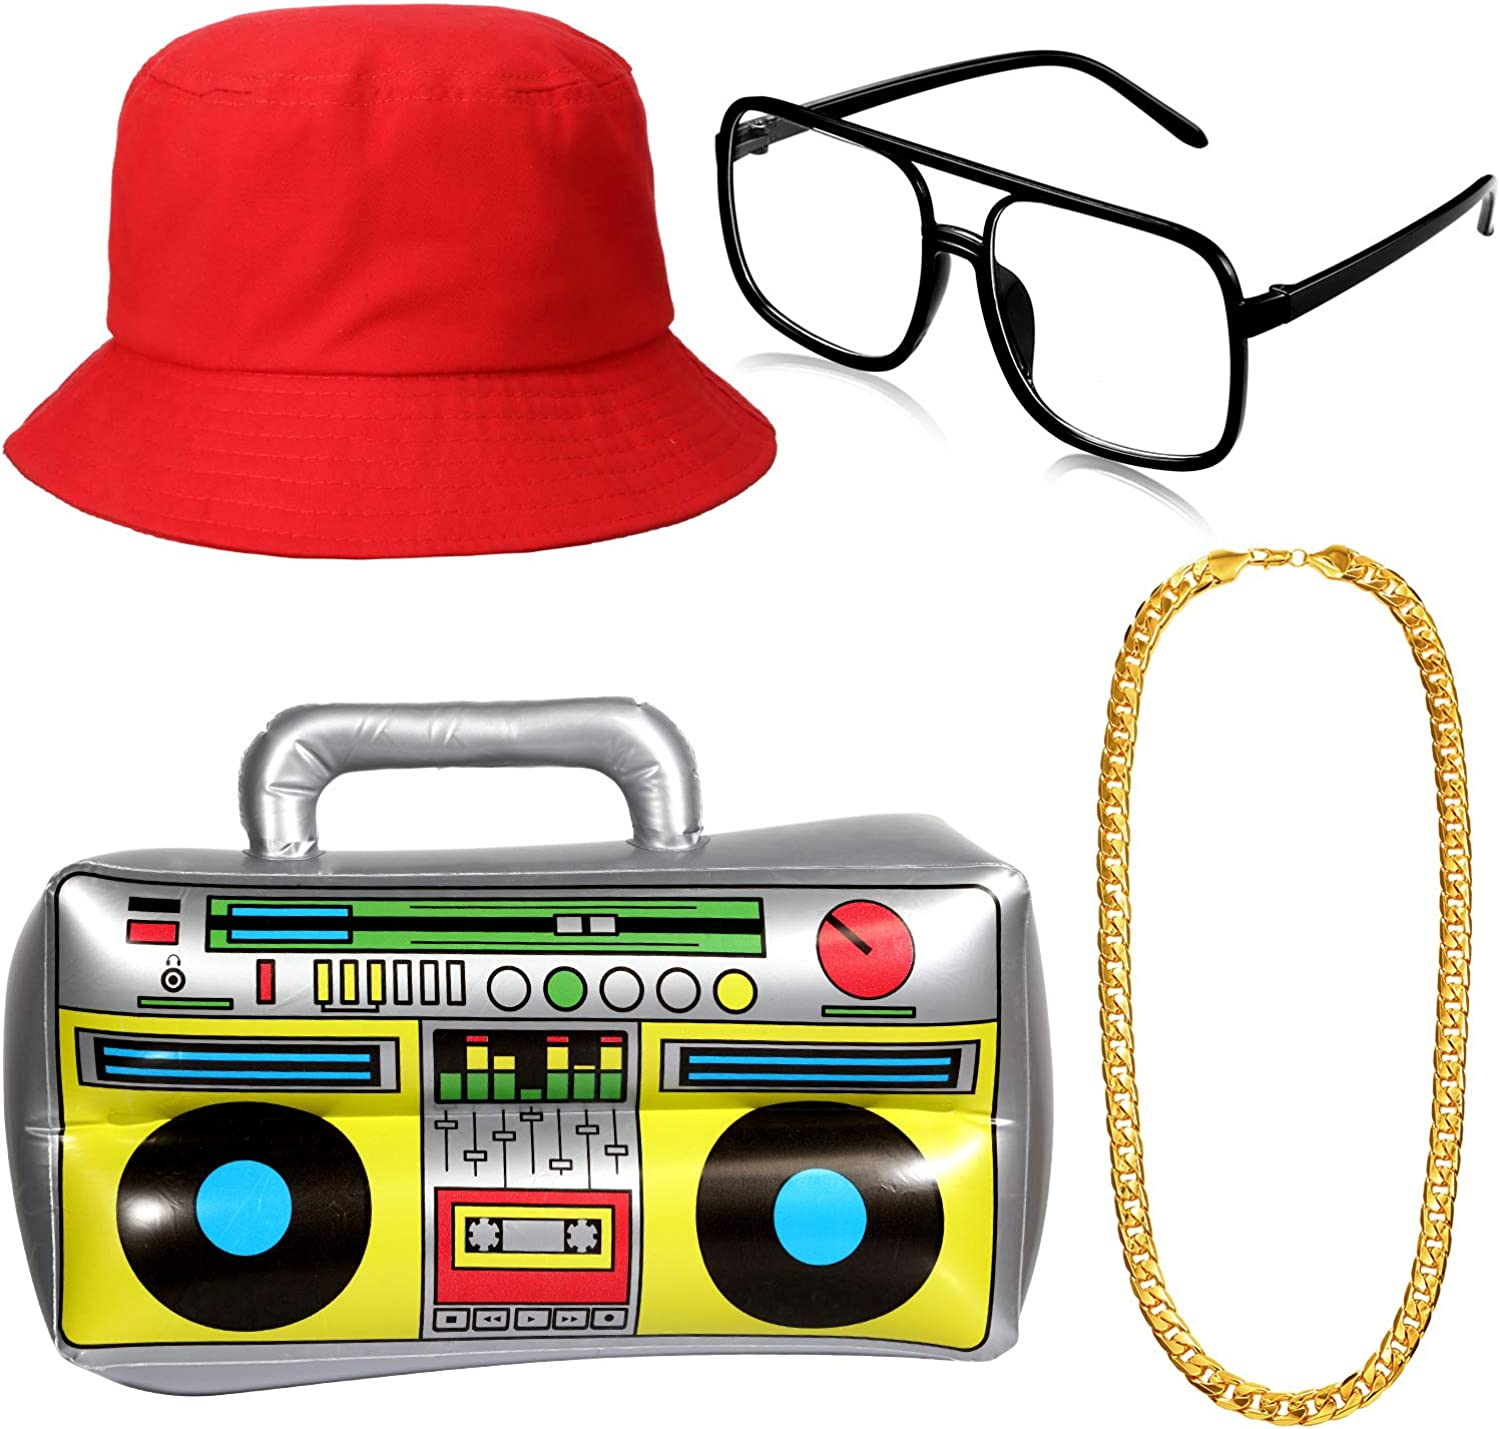 80s Costumes, Outfit Ideas- Girls and Guys Hip Hop Costume Kit Inflatable Boom Box Bucket Hat Sunglasses Gold Chain 80s/ 90s Rapper Accessories (Red) $15.99 AT vintagedancer.com